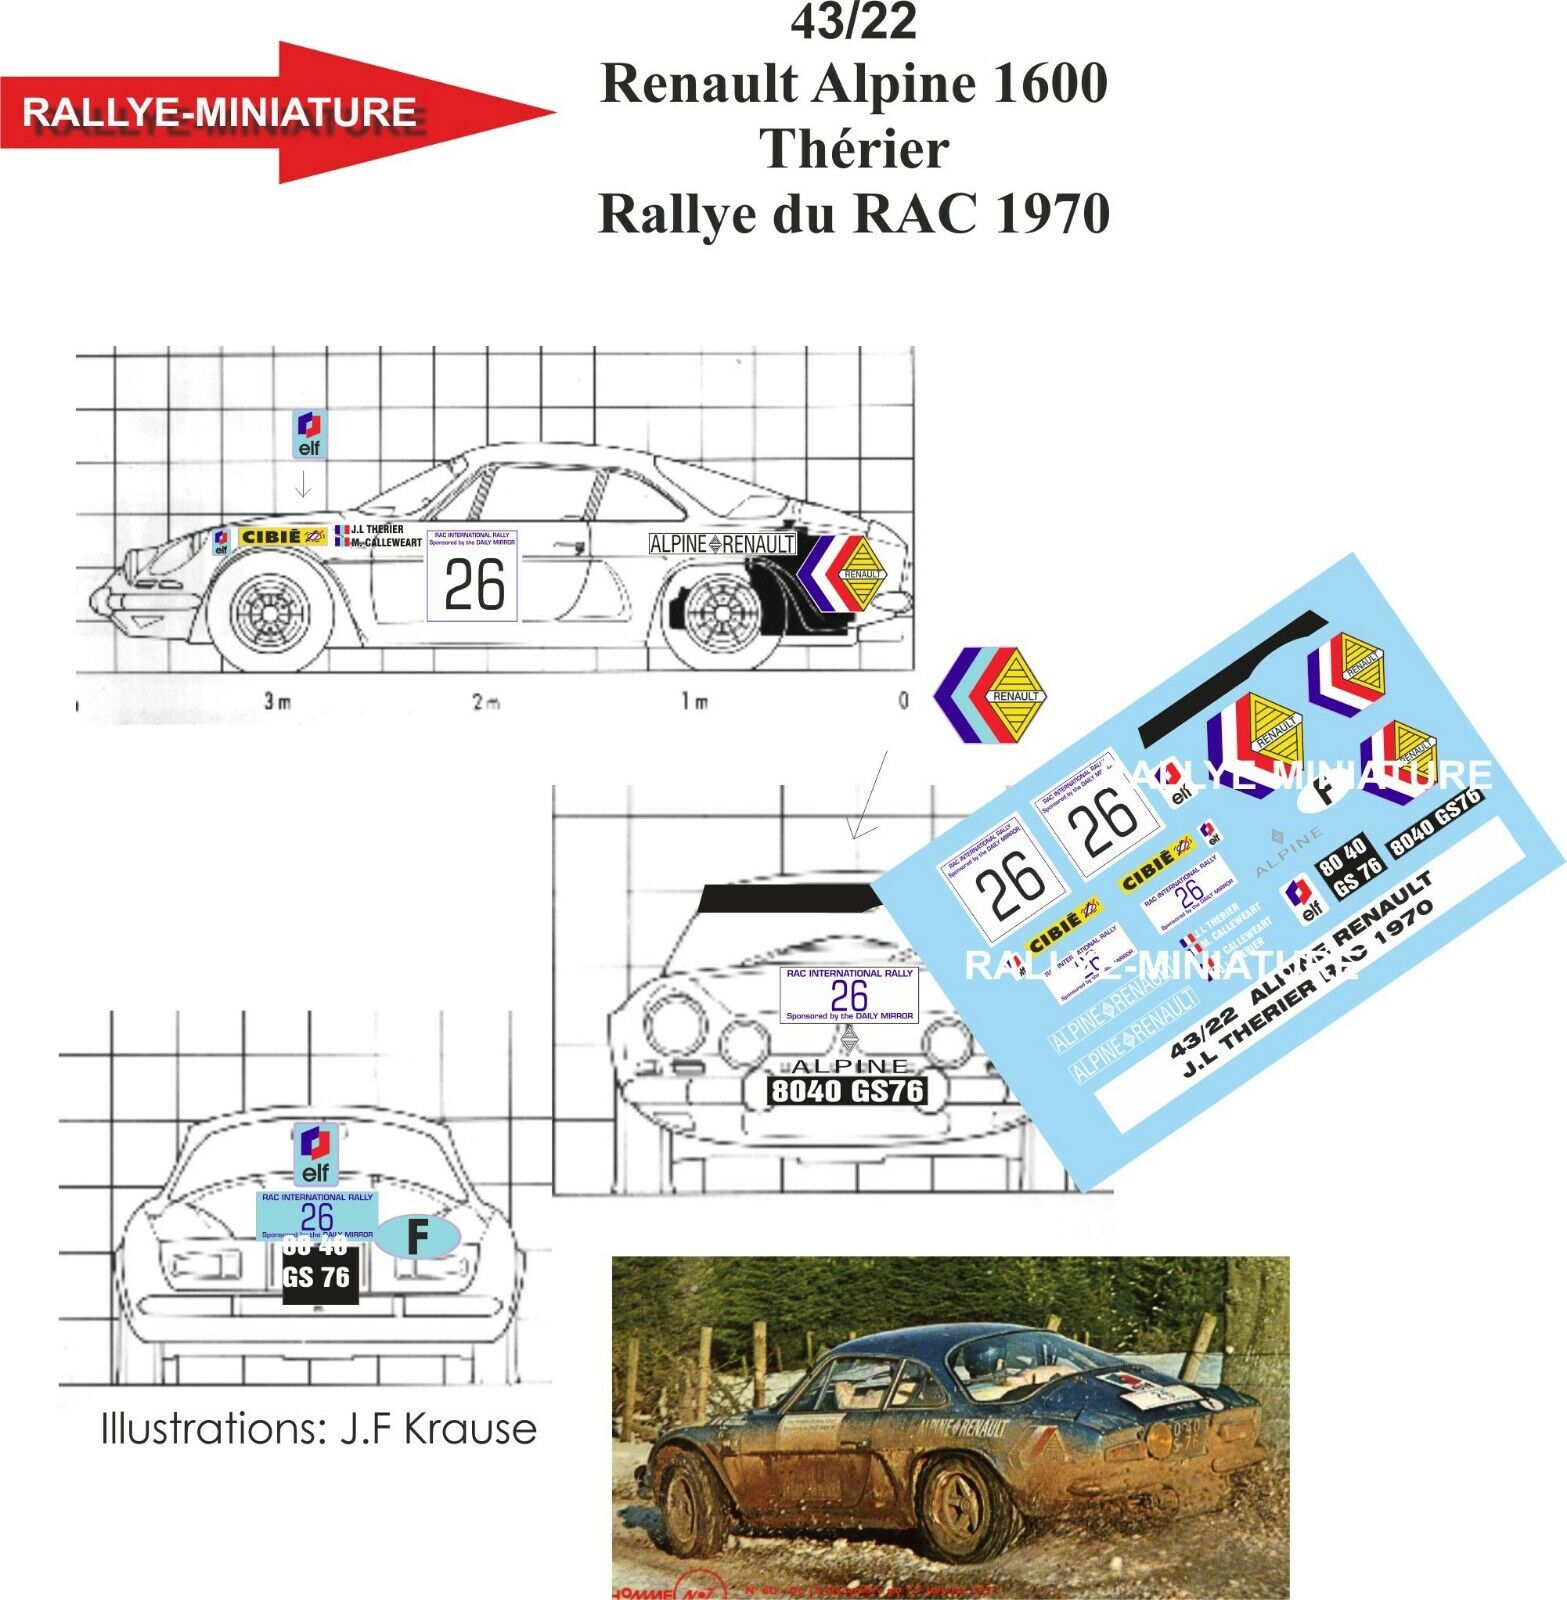 DECALS 1 43 REF 4322 ALPINE RENAULT A110 THERIER RAC RALLY 1970 GREAT BRITAIN